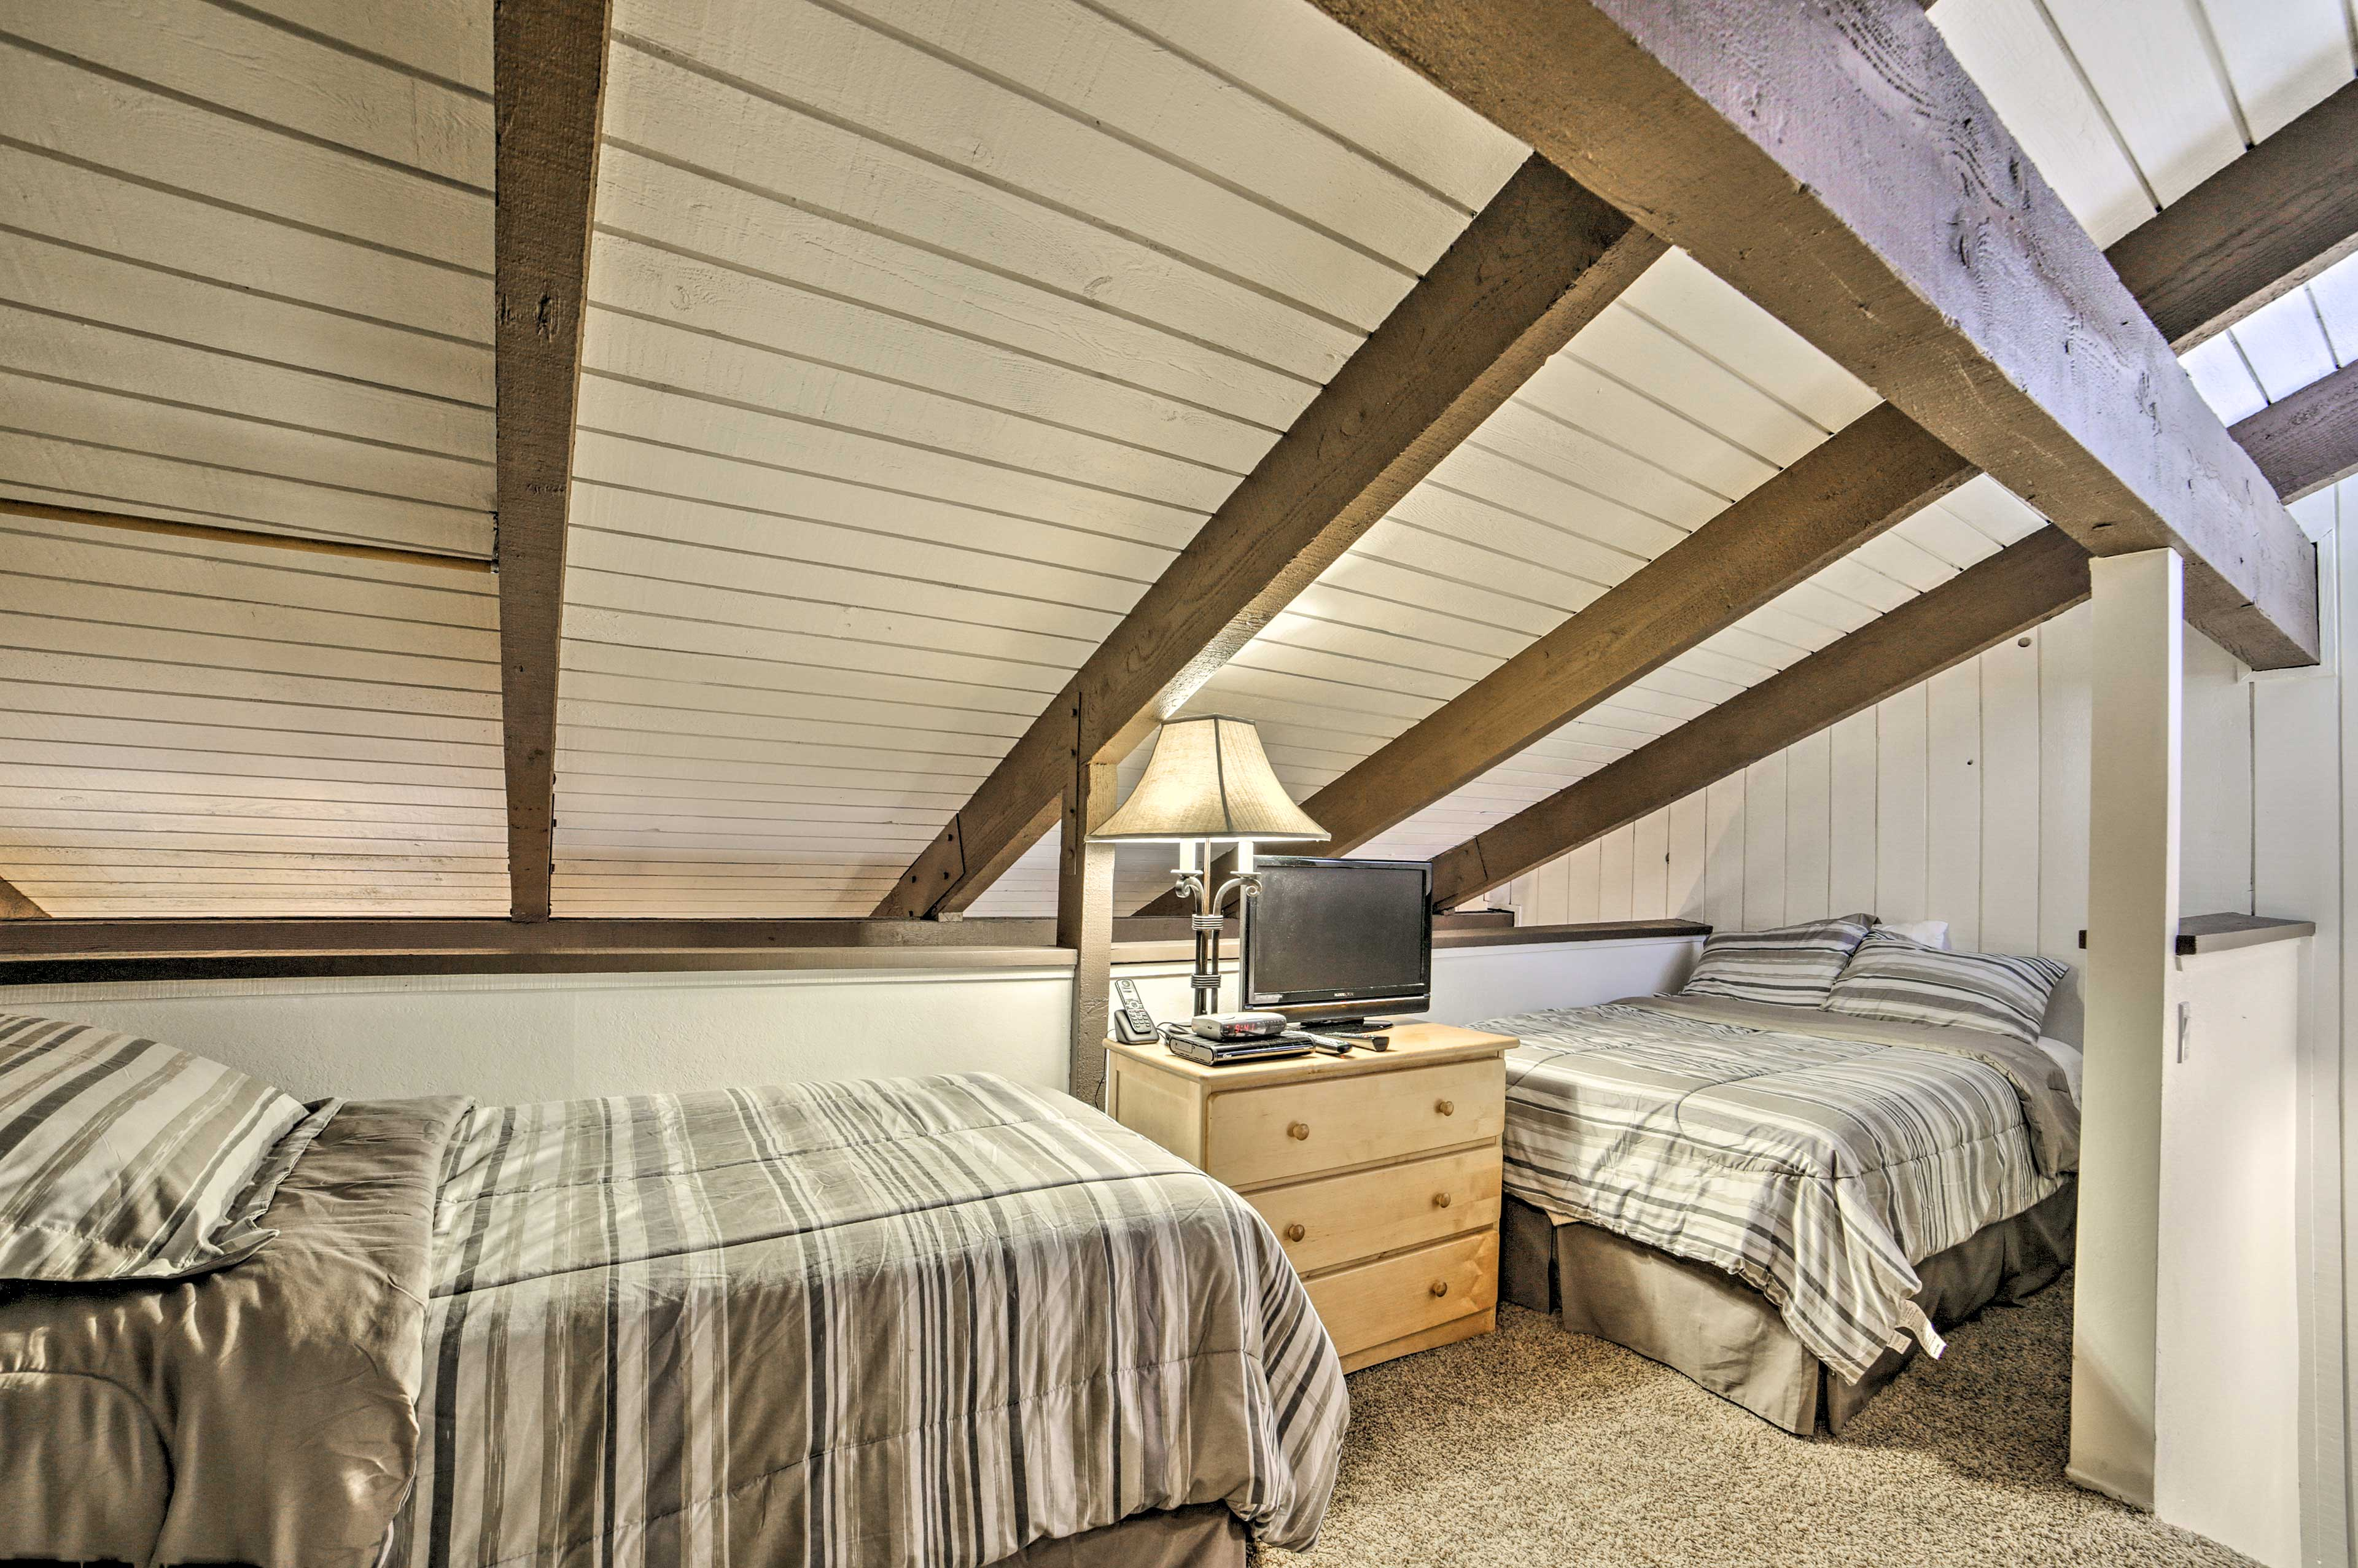 Kids will love curling up in the loft.